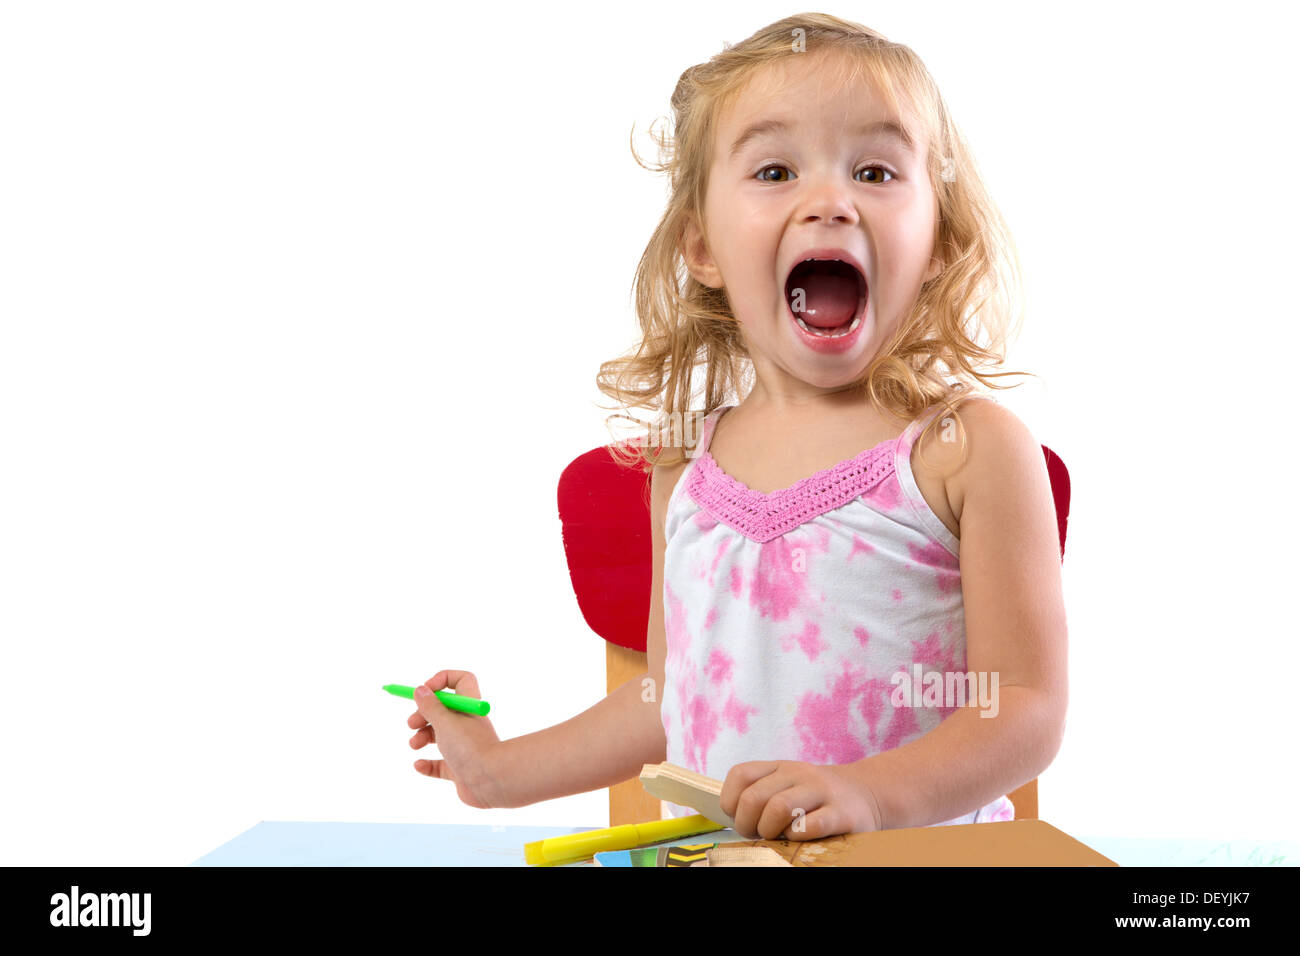 Toddler Girl Learning At The Table Very Excited Her Eyebrows Are